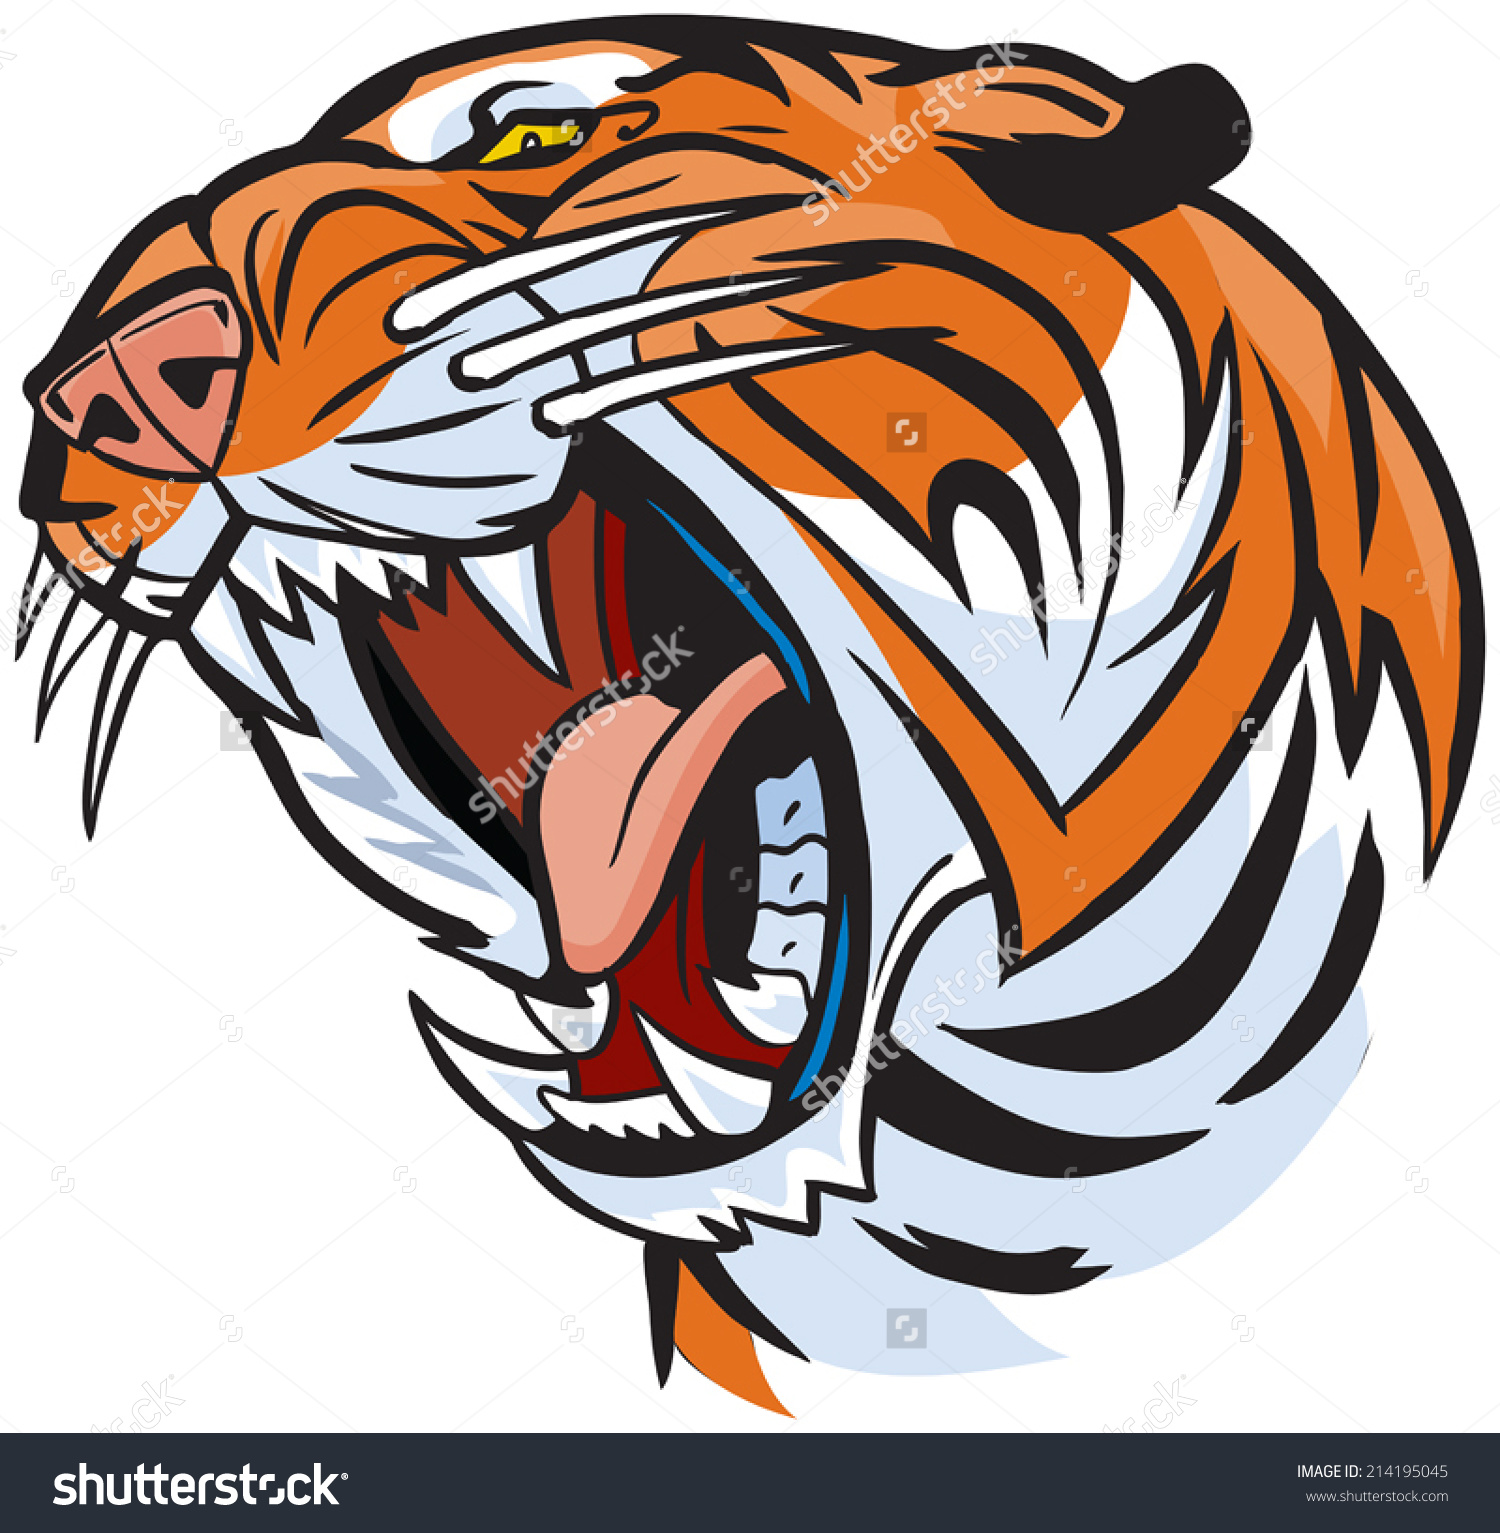 Vector Cartoon Clip Art Illustration of a roaring tiger head.